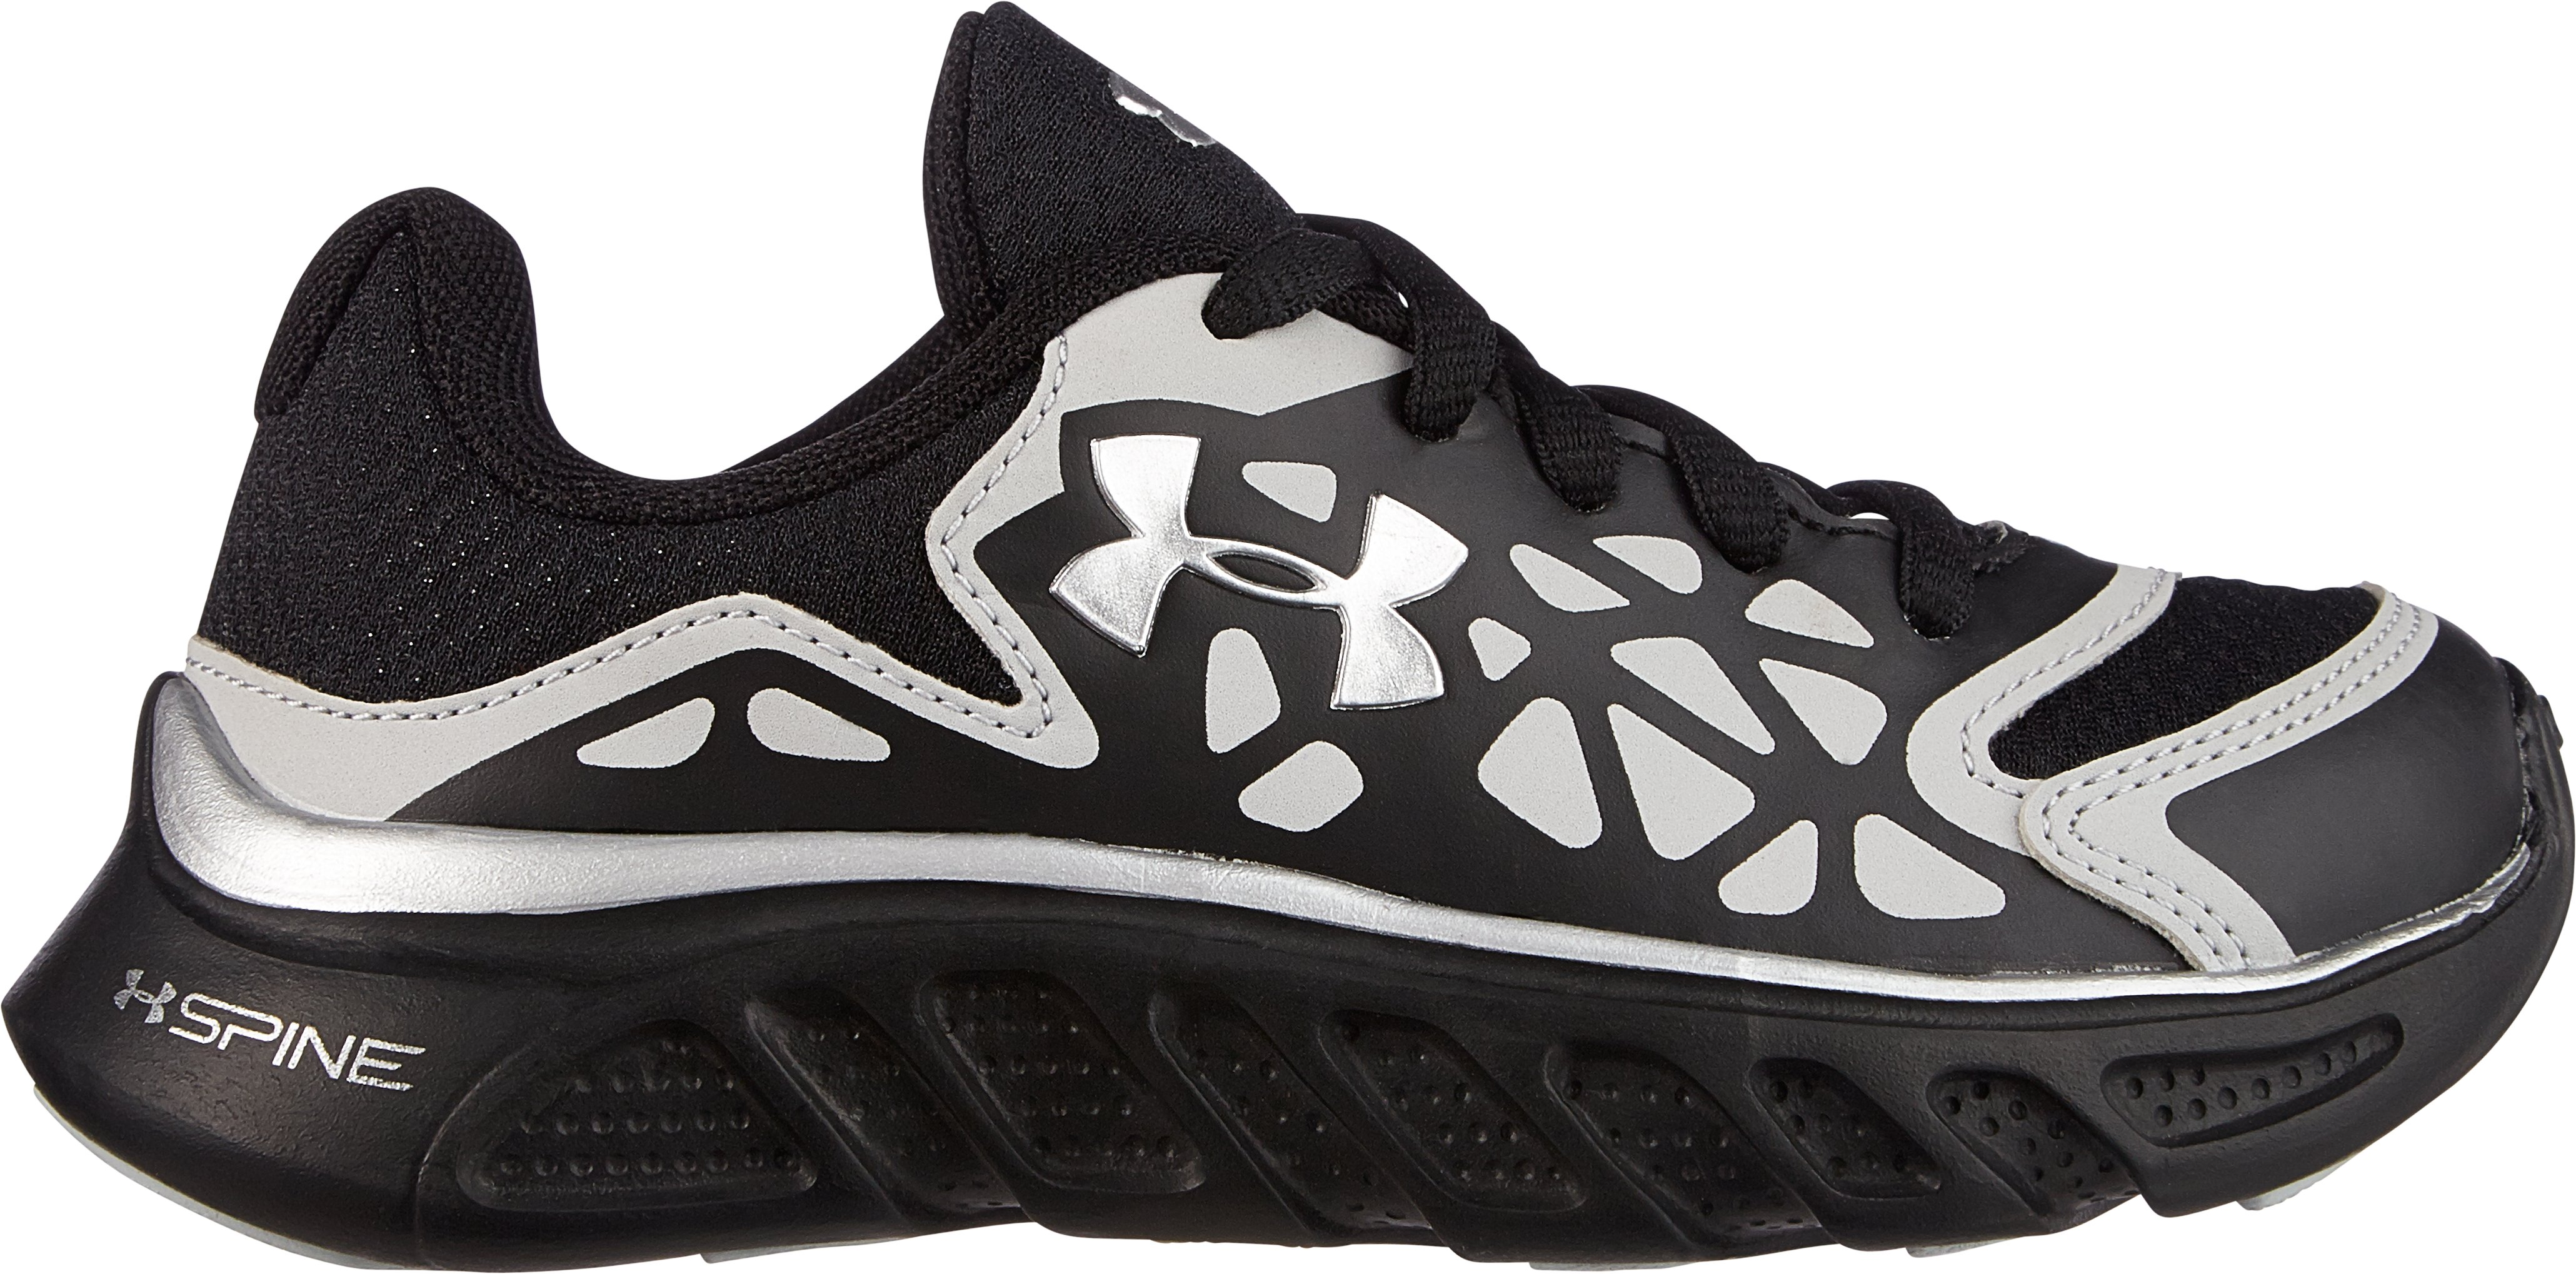 Boys' Pre-School UA Spine™ Surge Shoes, Black